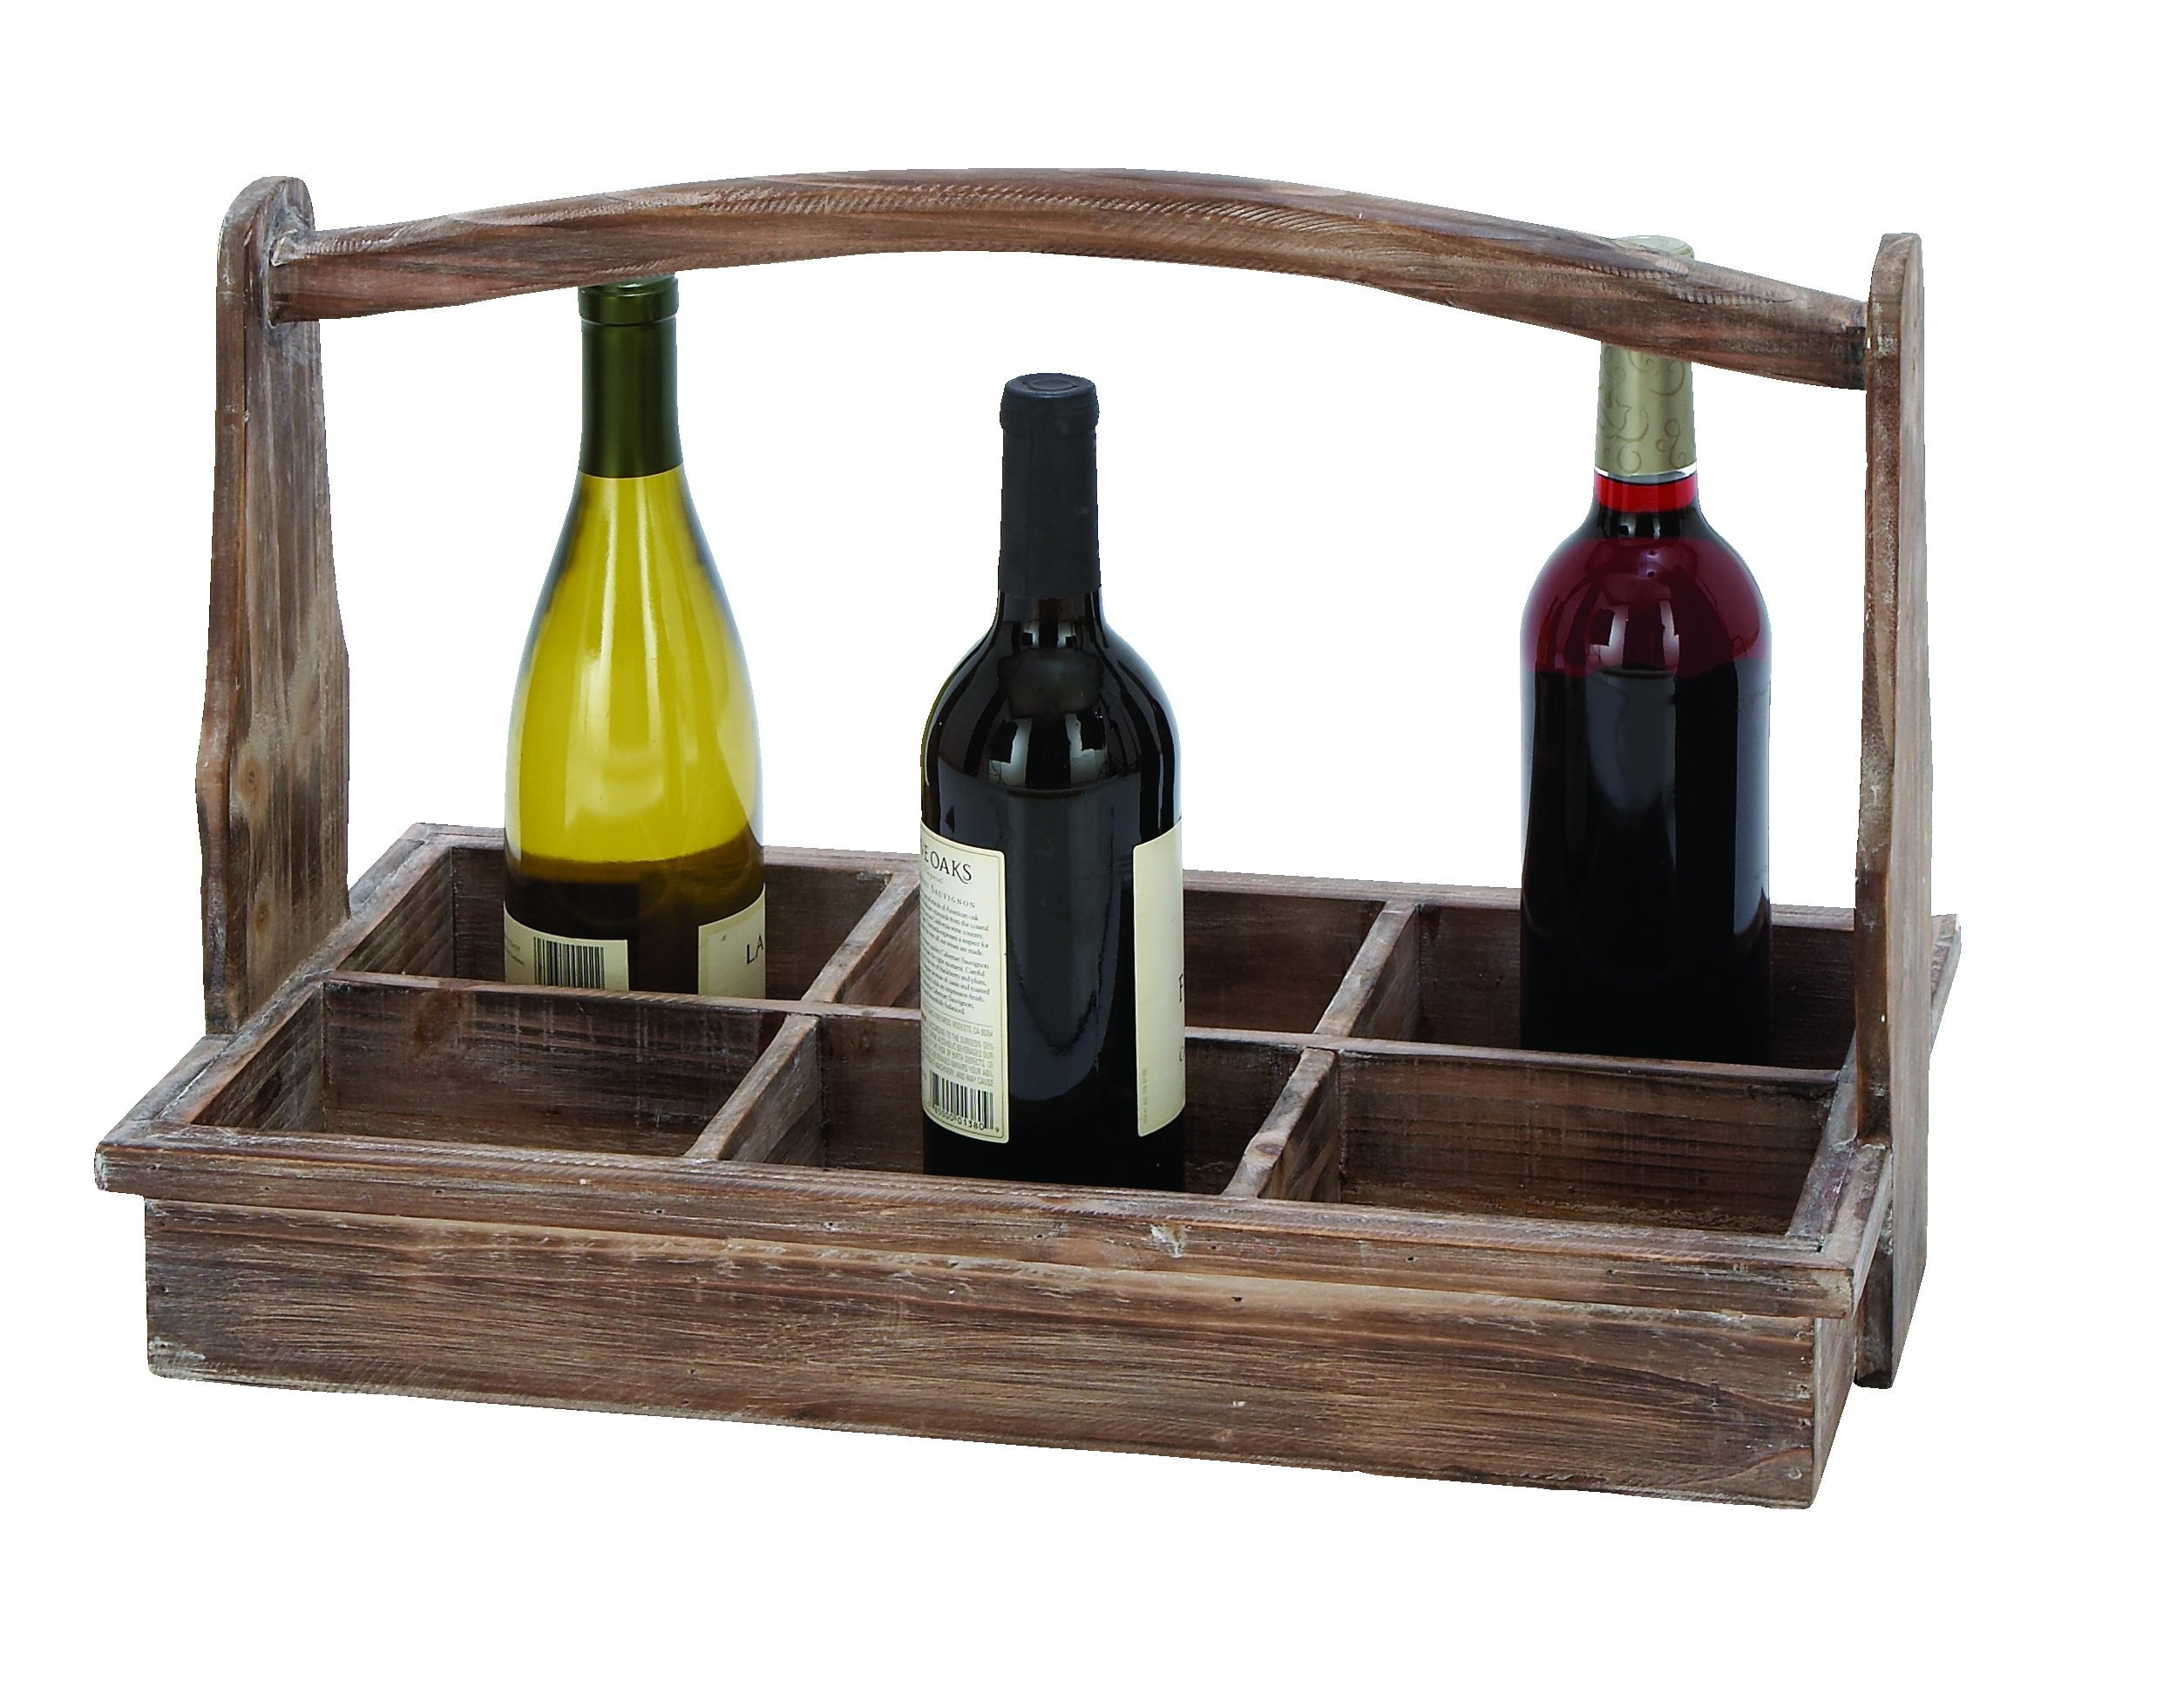 Deco 79 66788 Useful and Portable Wine Bottle Basket with Aged Wood